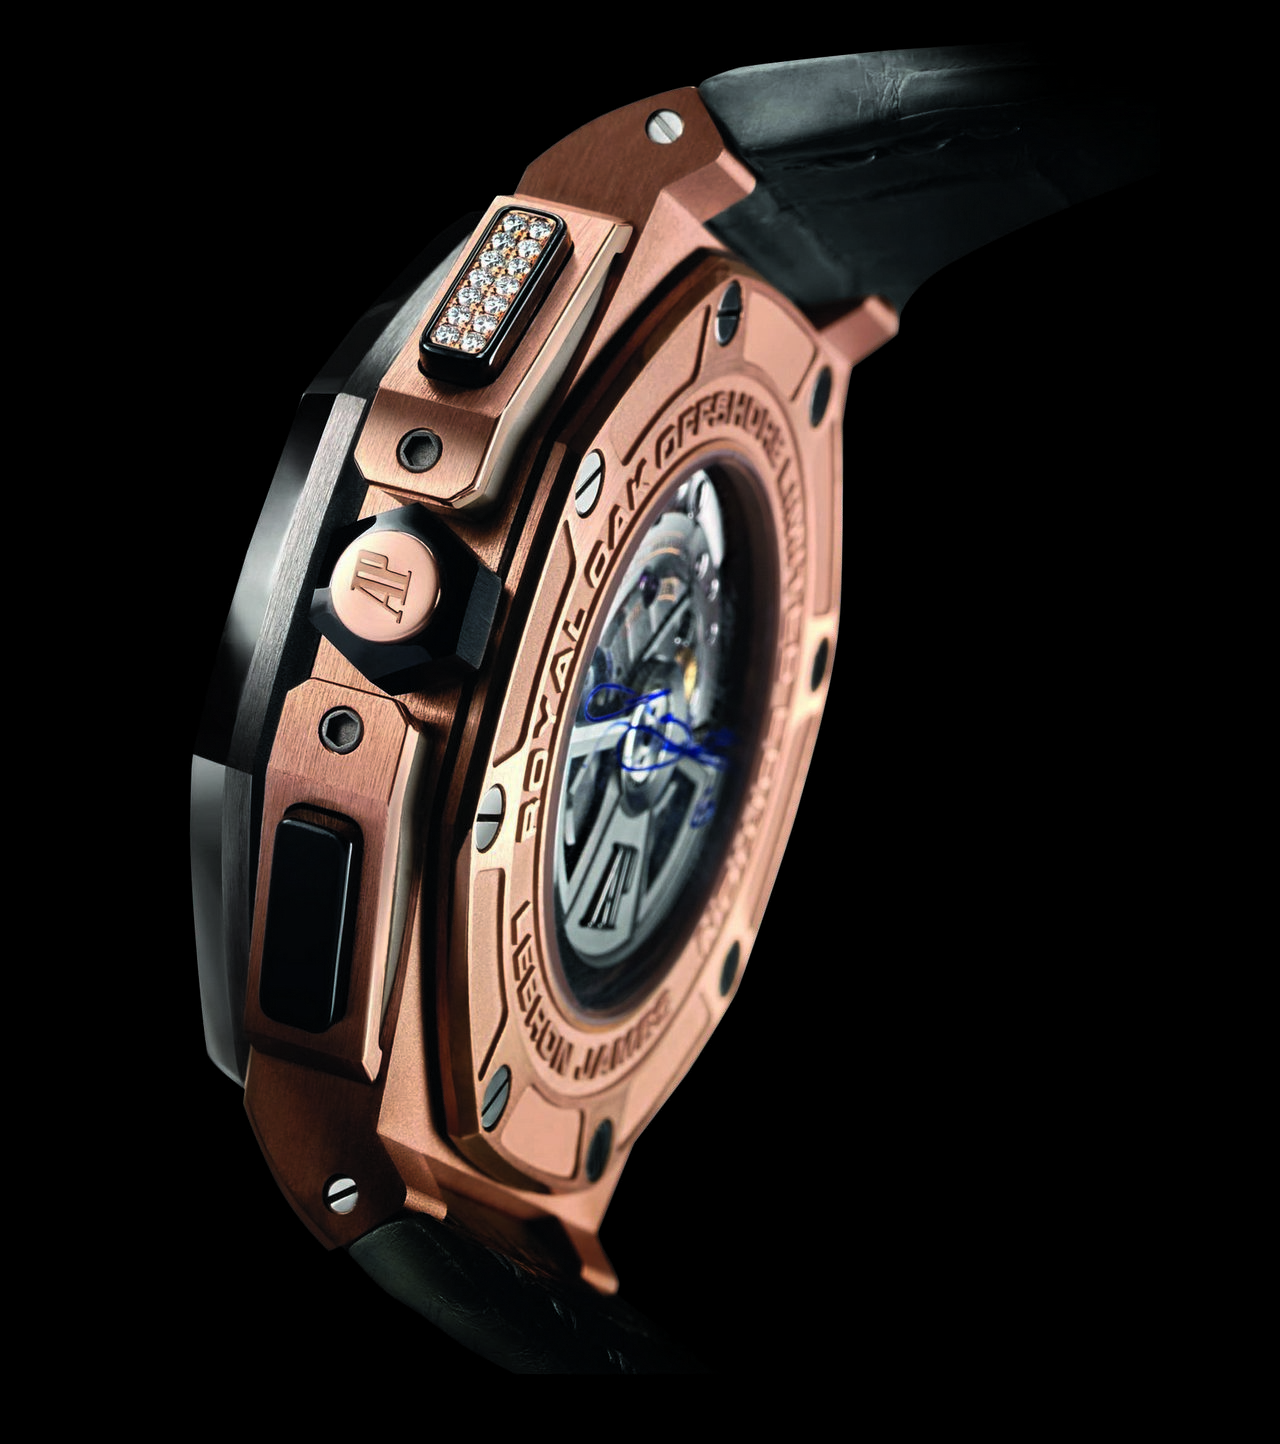 audemars-piguet-royal-oak-offshore-lebron-james-limited-edition_90-100